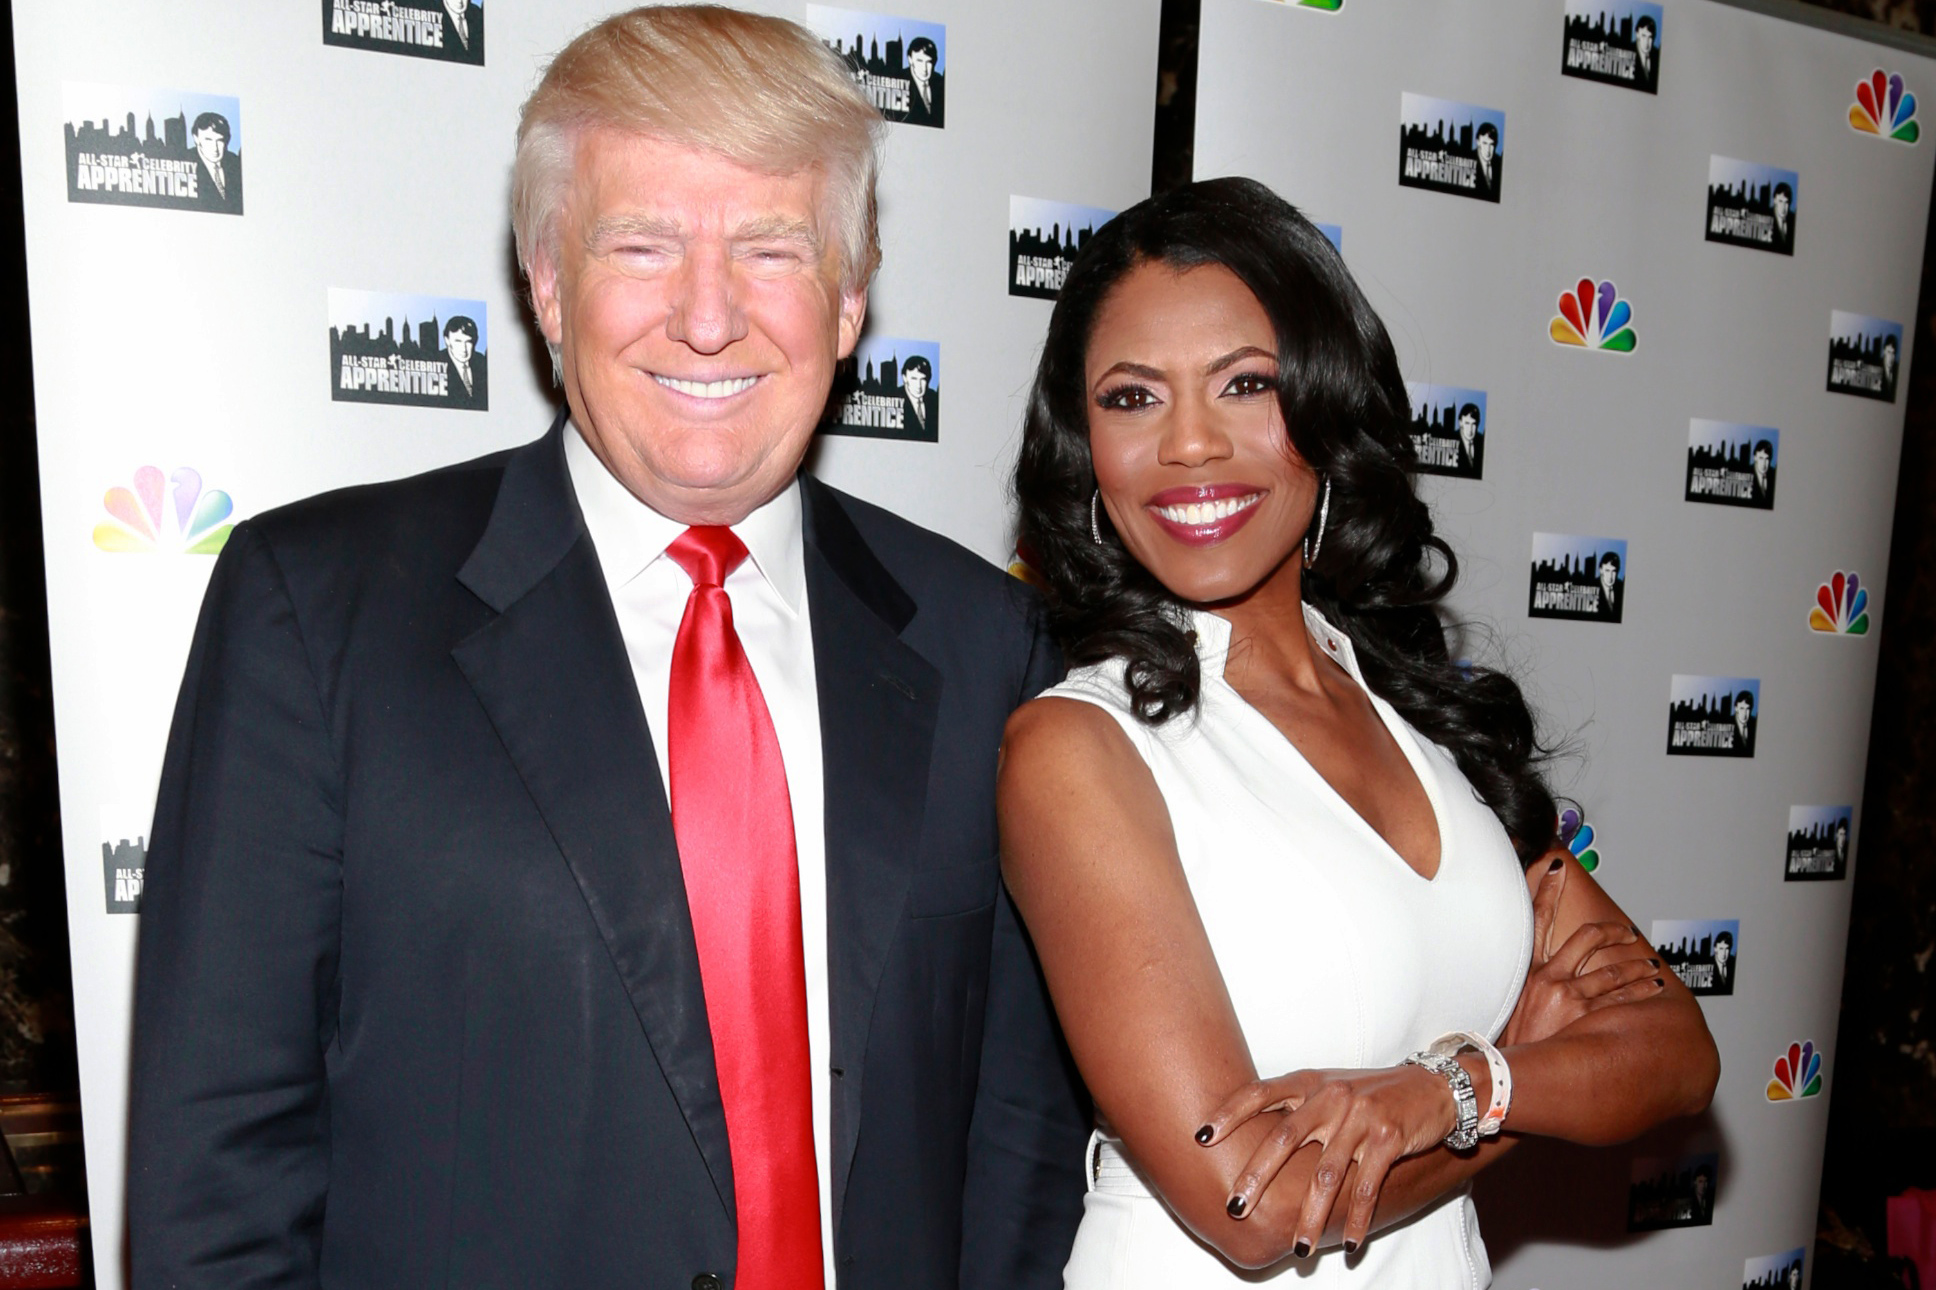 Donald Trump and Omarosa Manigault at Trump Tower on April 1, 2013 in New York.